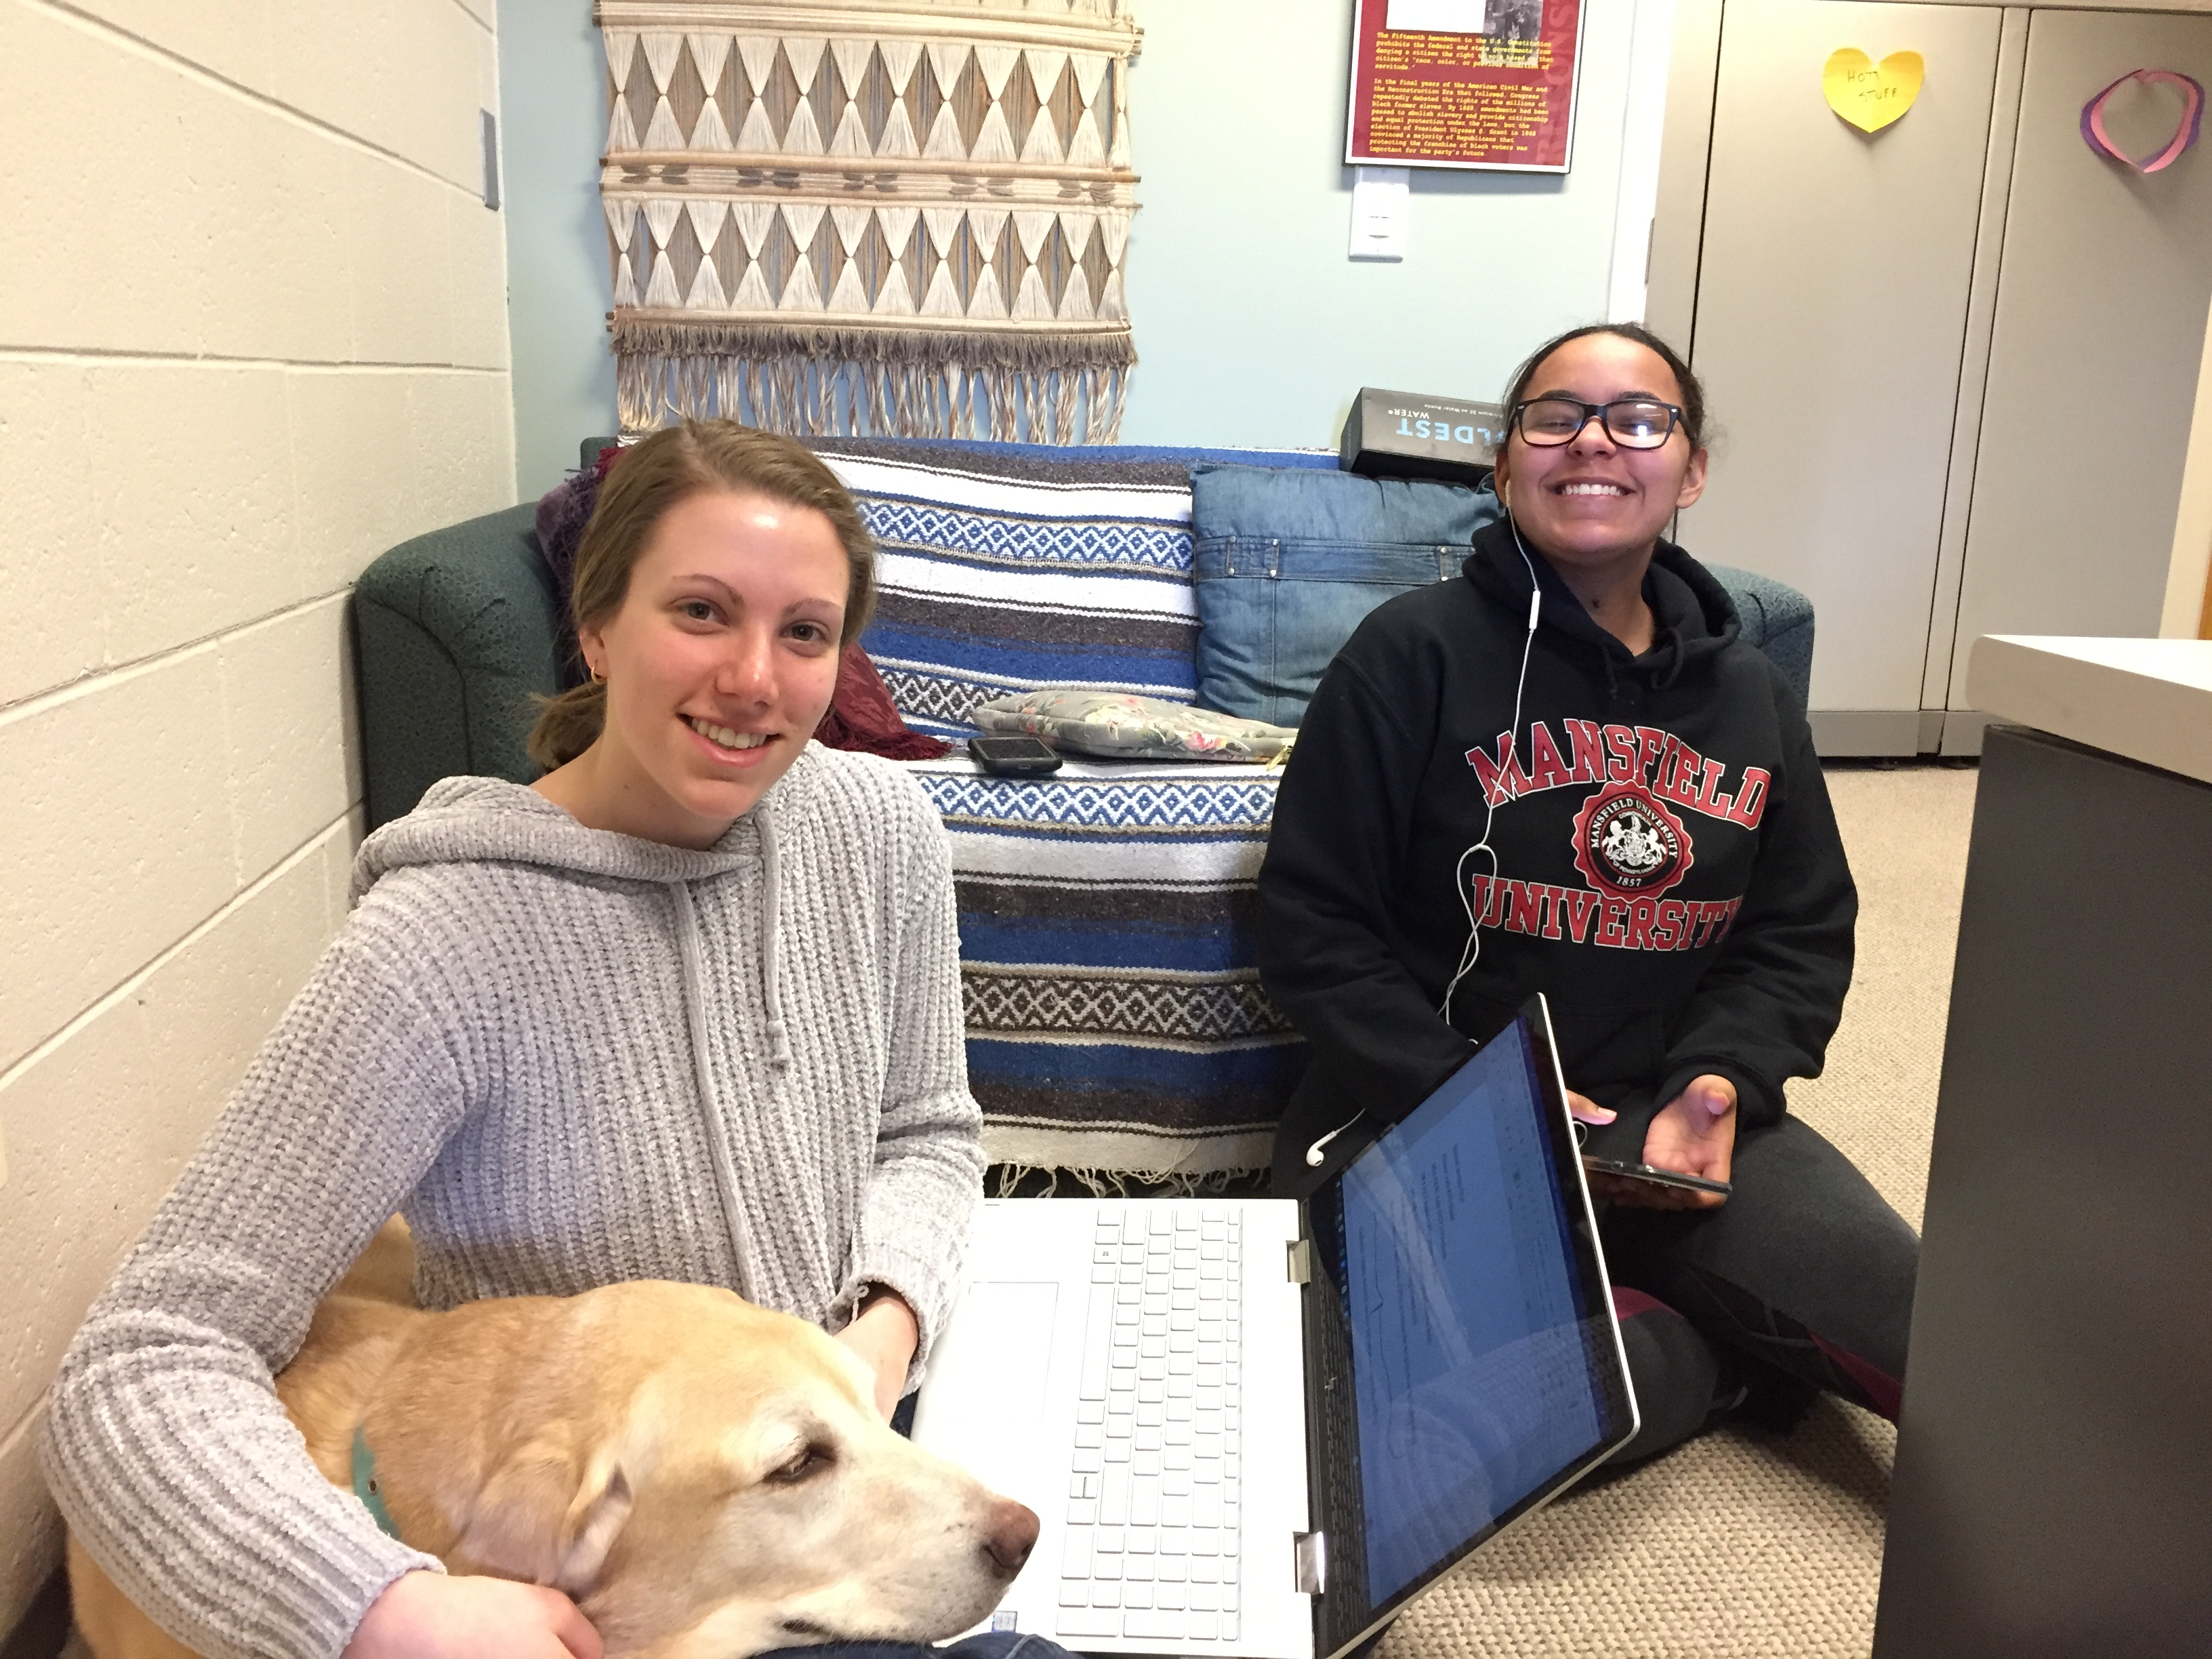 Students studying with dogs